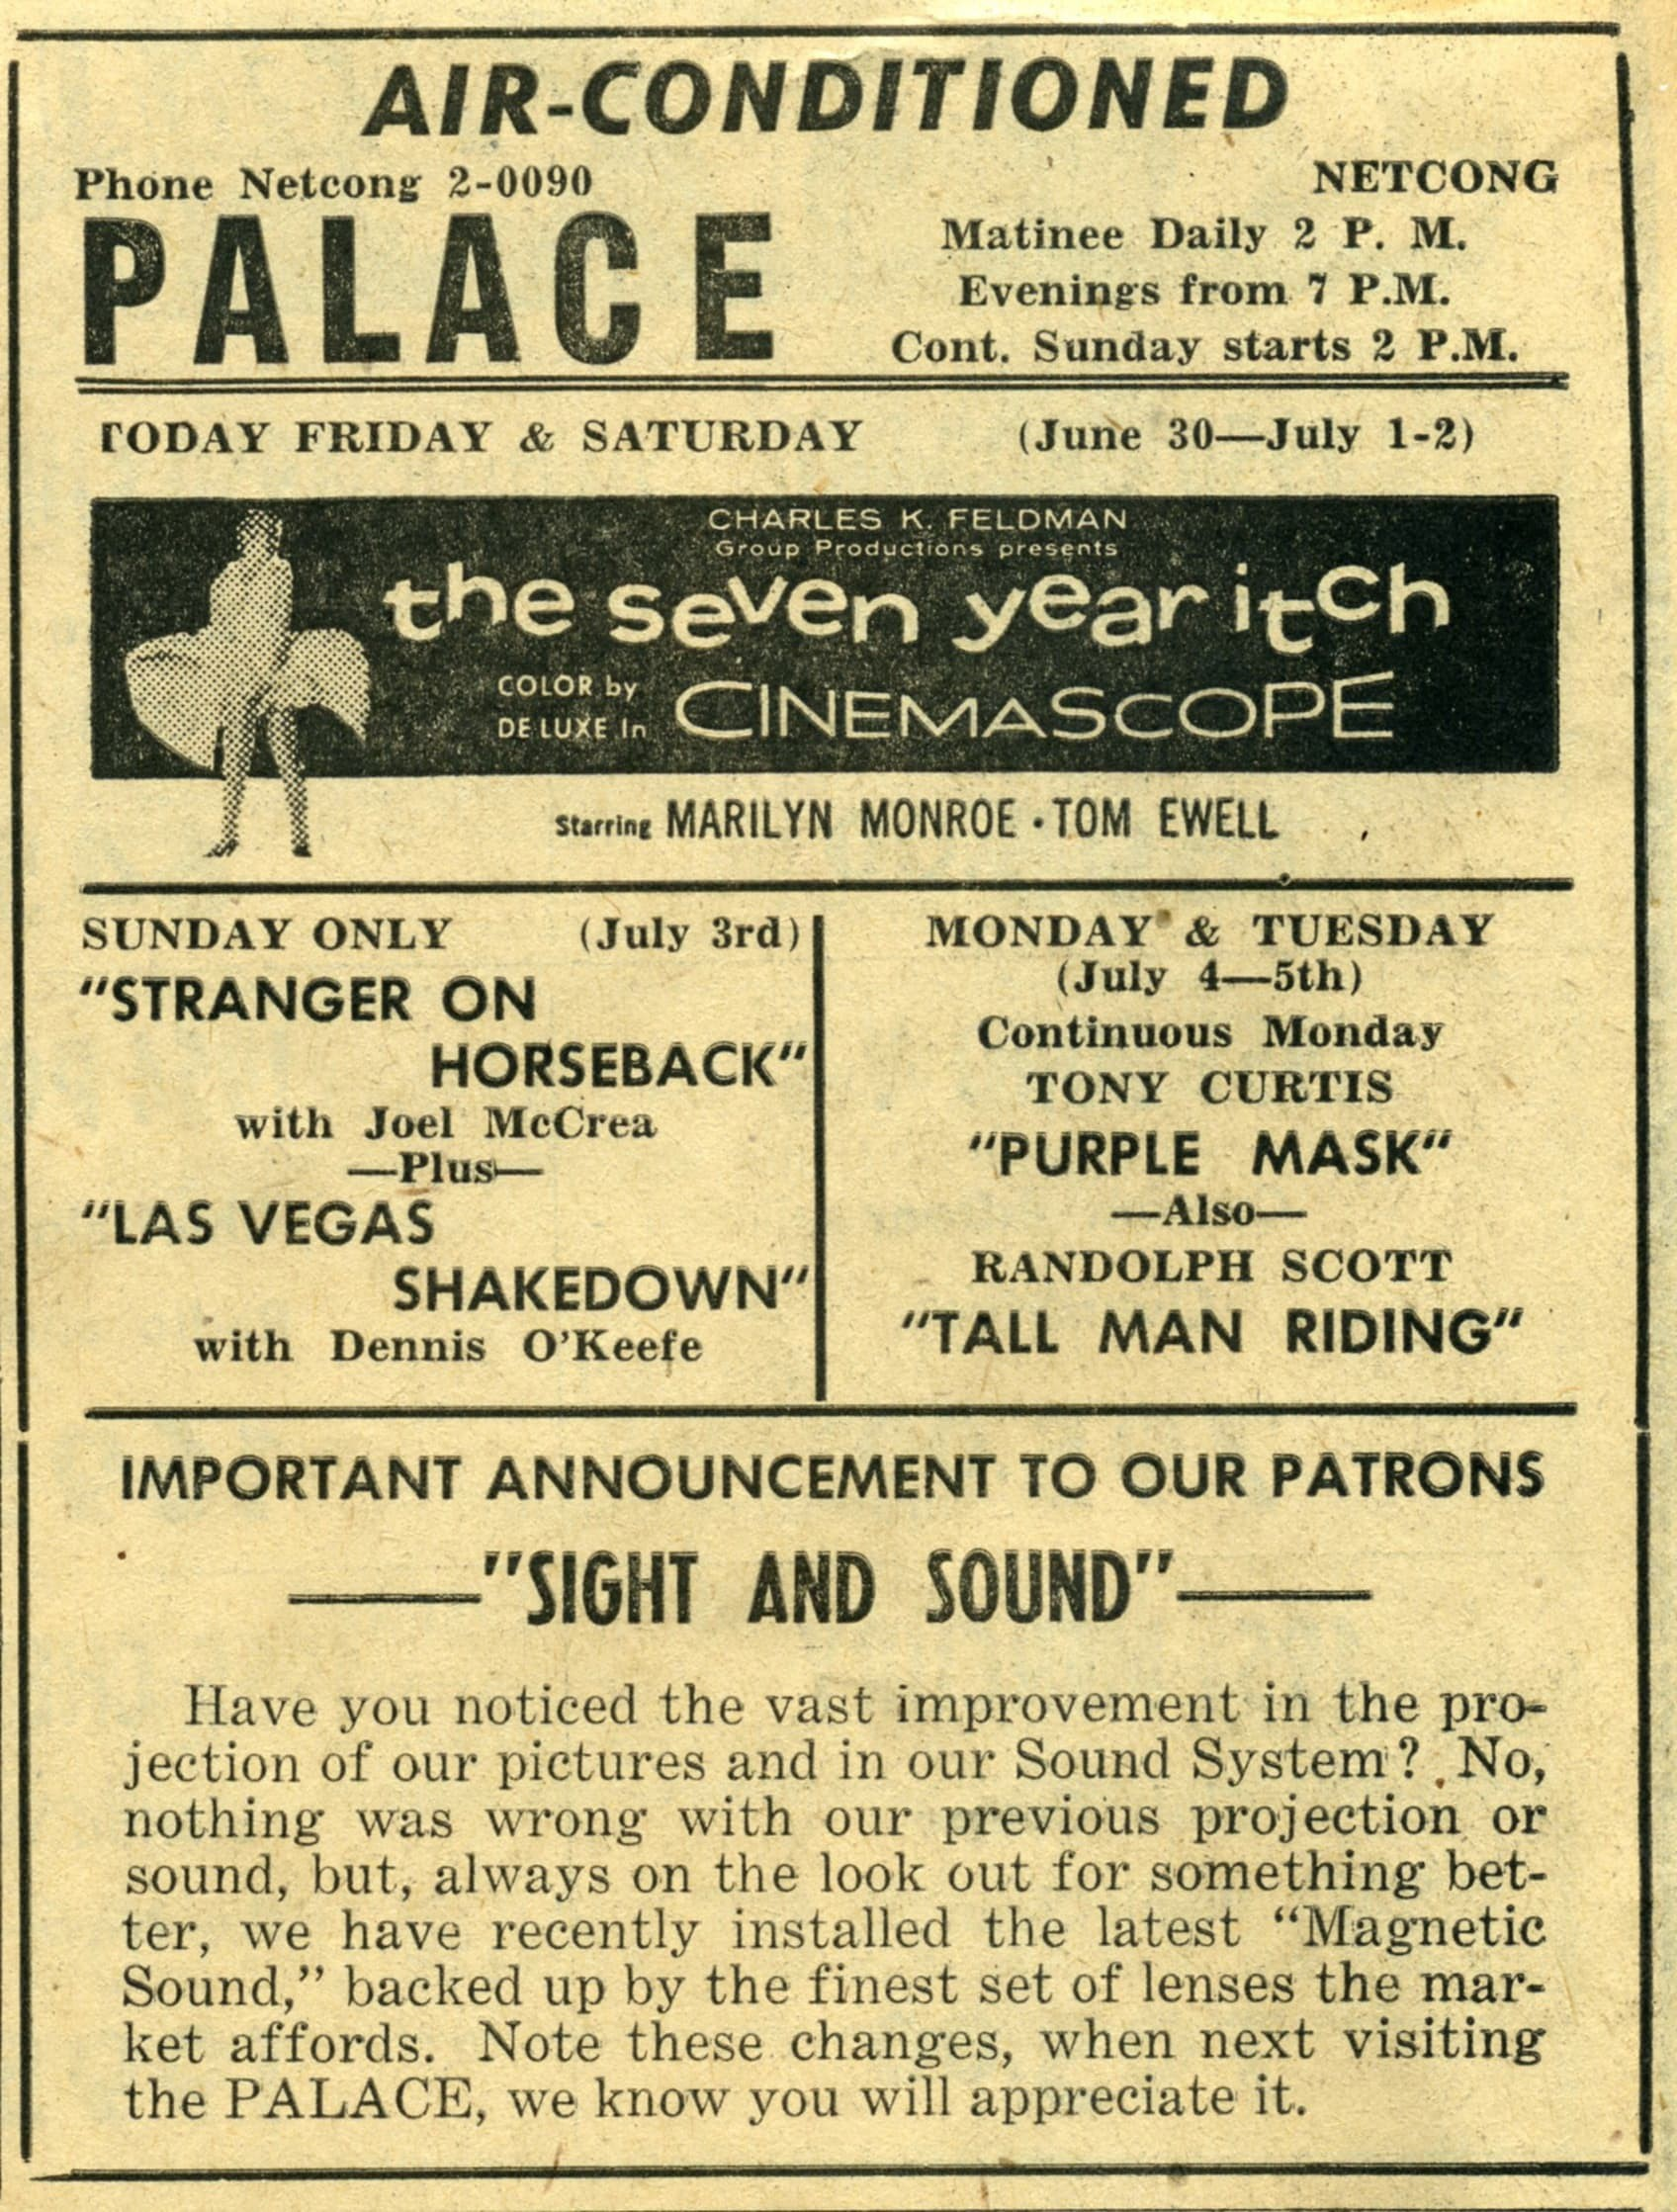 A 1955 ad highlighting the theatre's air conditioning.